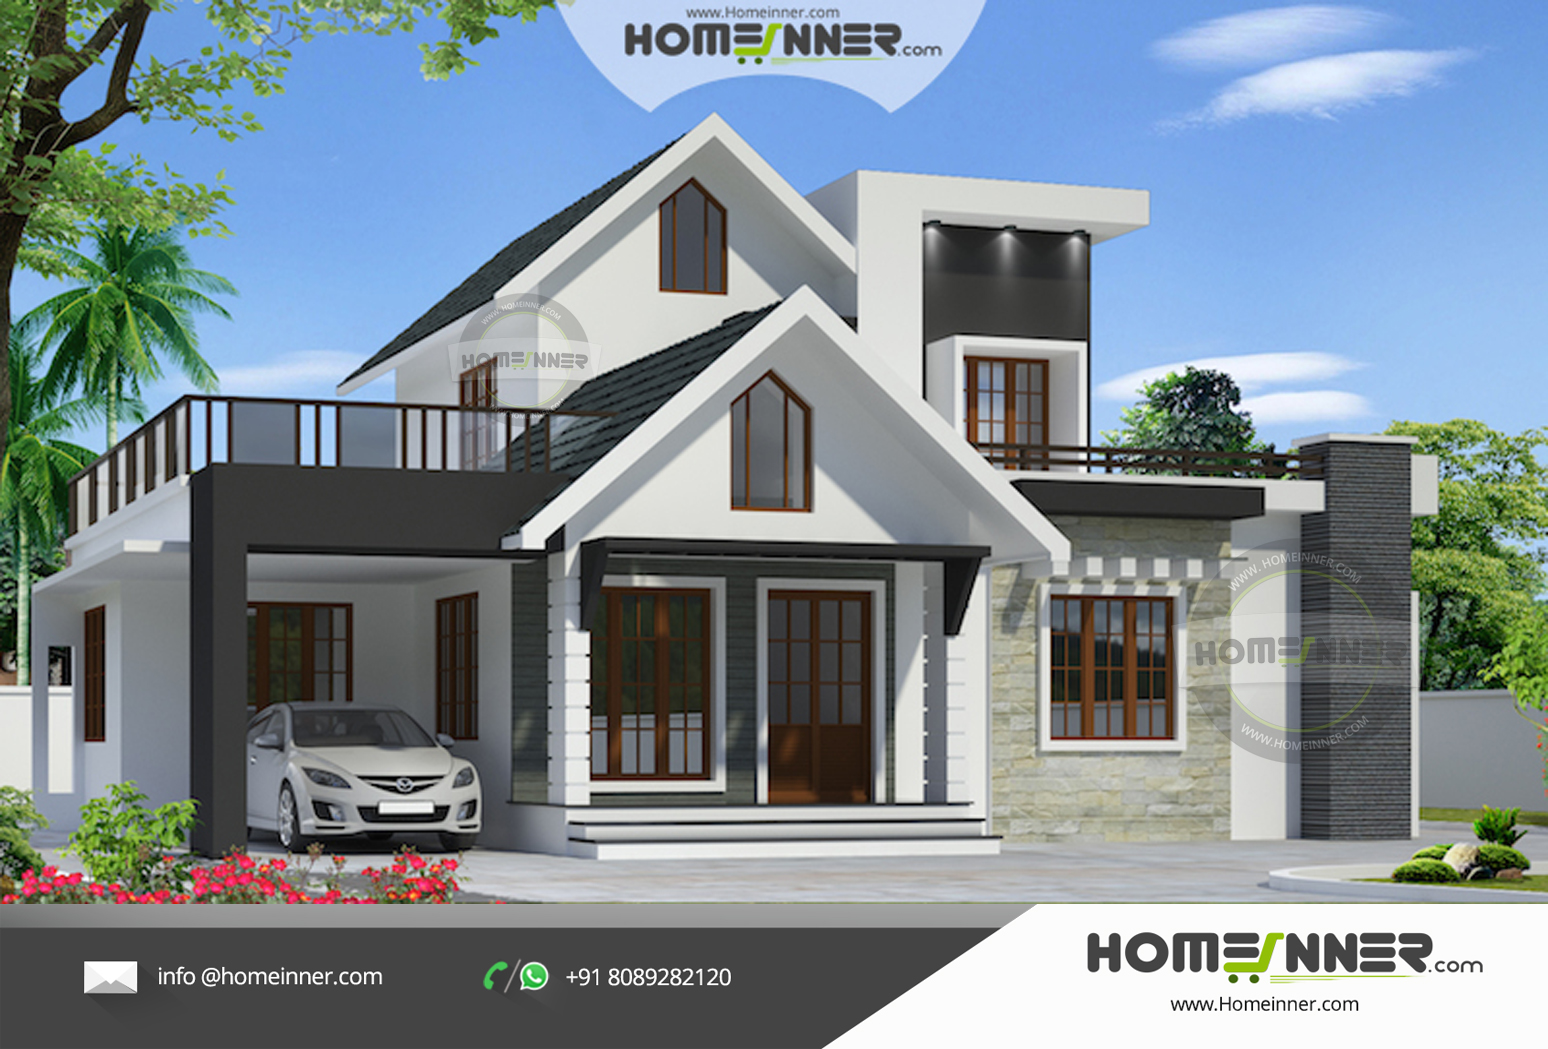 Small and beautiful 3 bedroom Indian Home Design in 1490 sqft